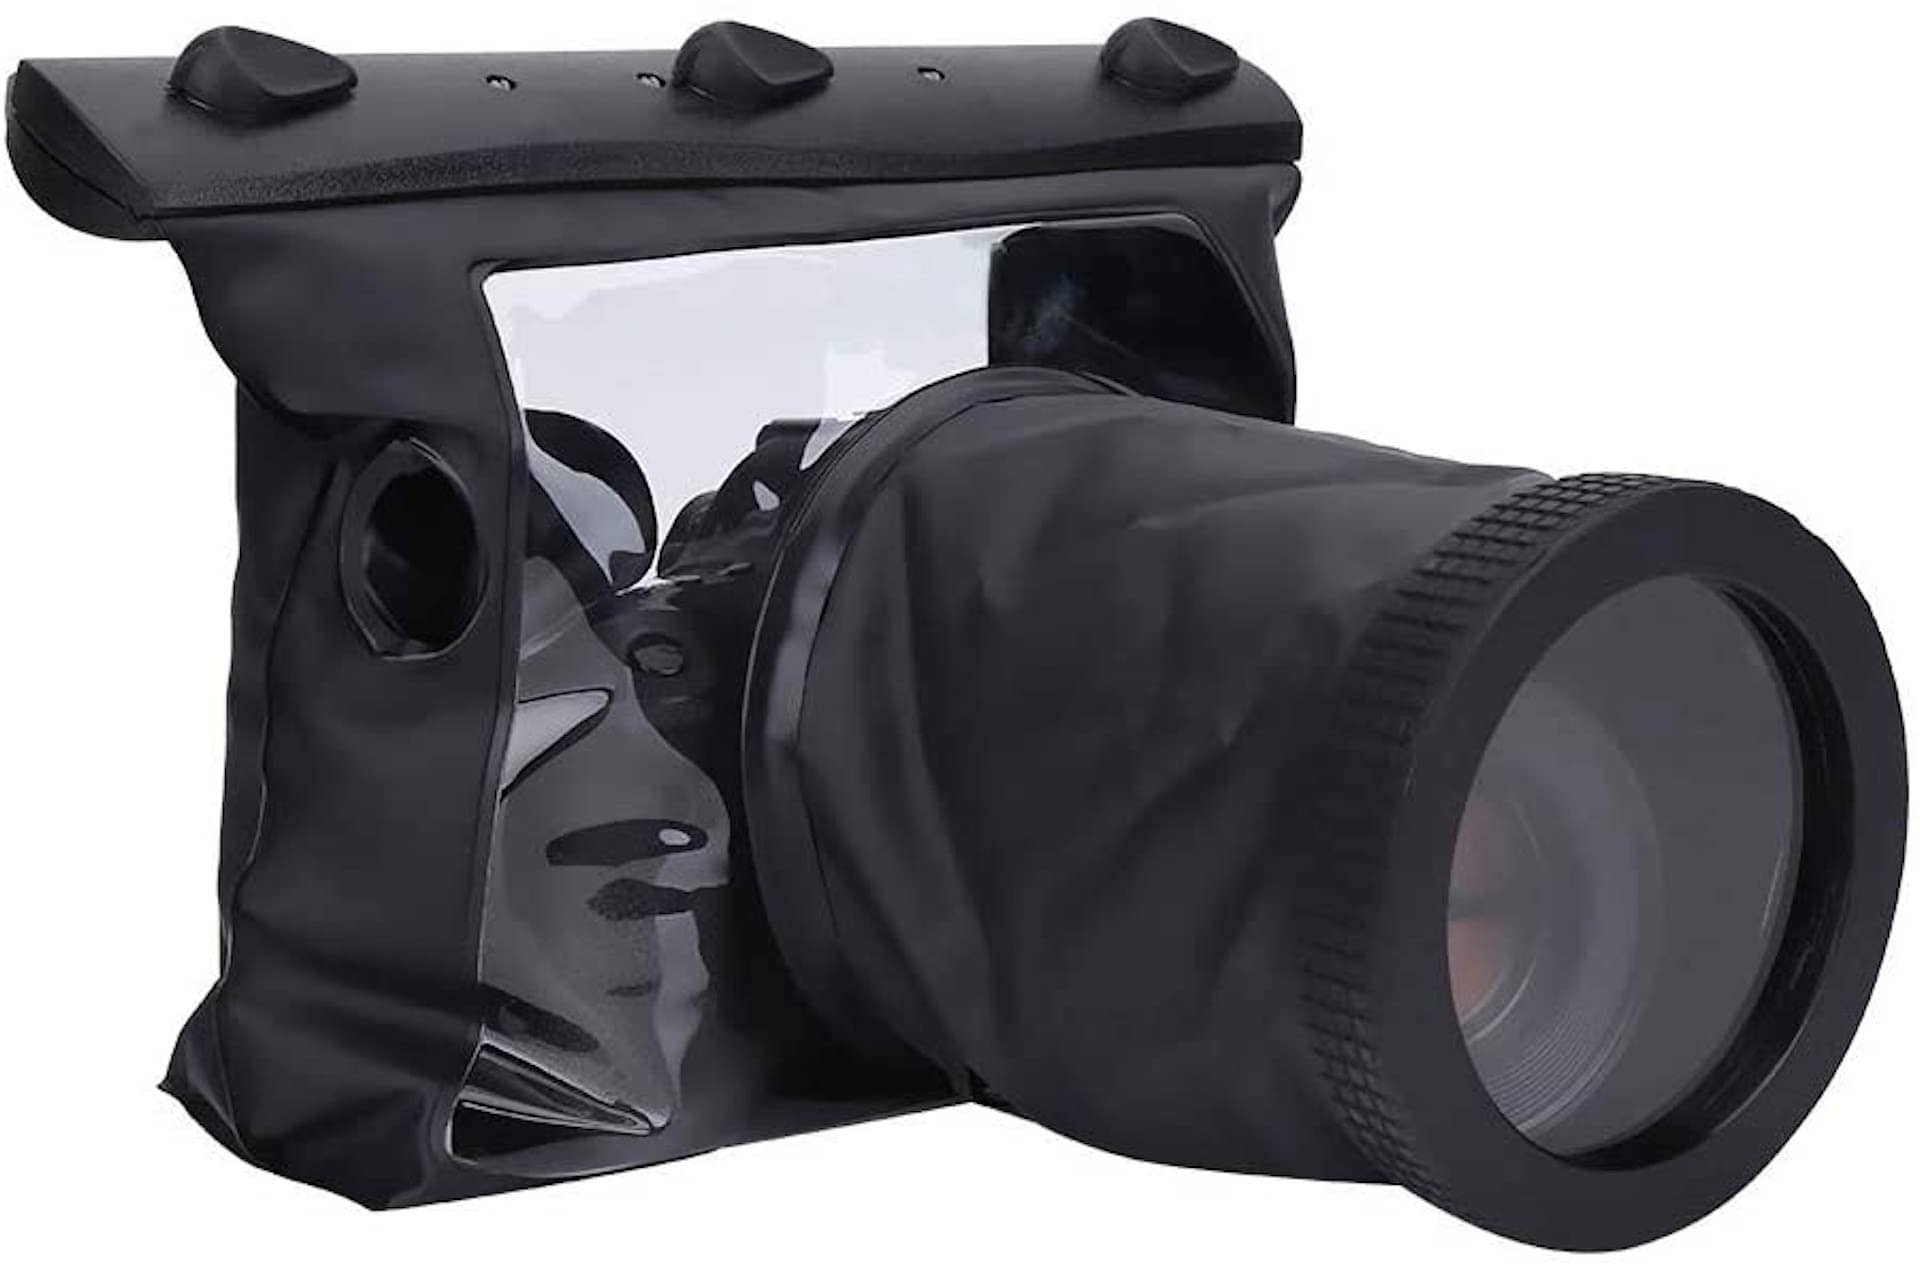 Best Photo Gifts for Photographers - Ideas Photographer Lovers - Waterproof Camera Housing Case